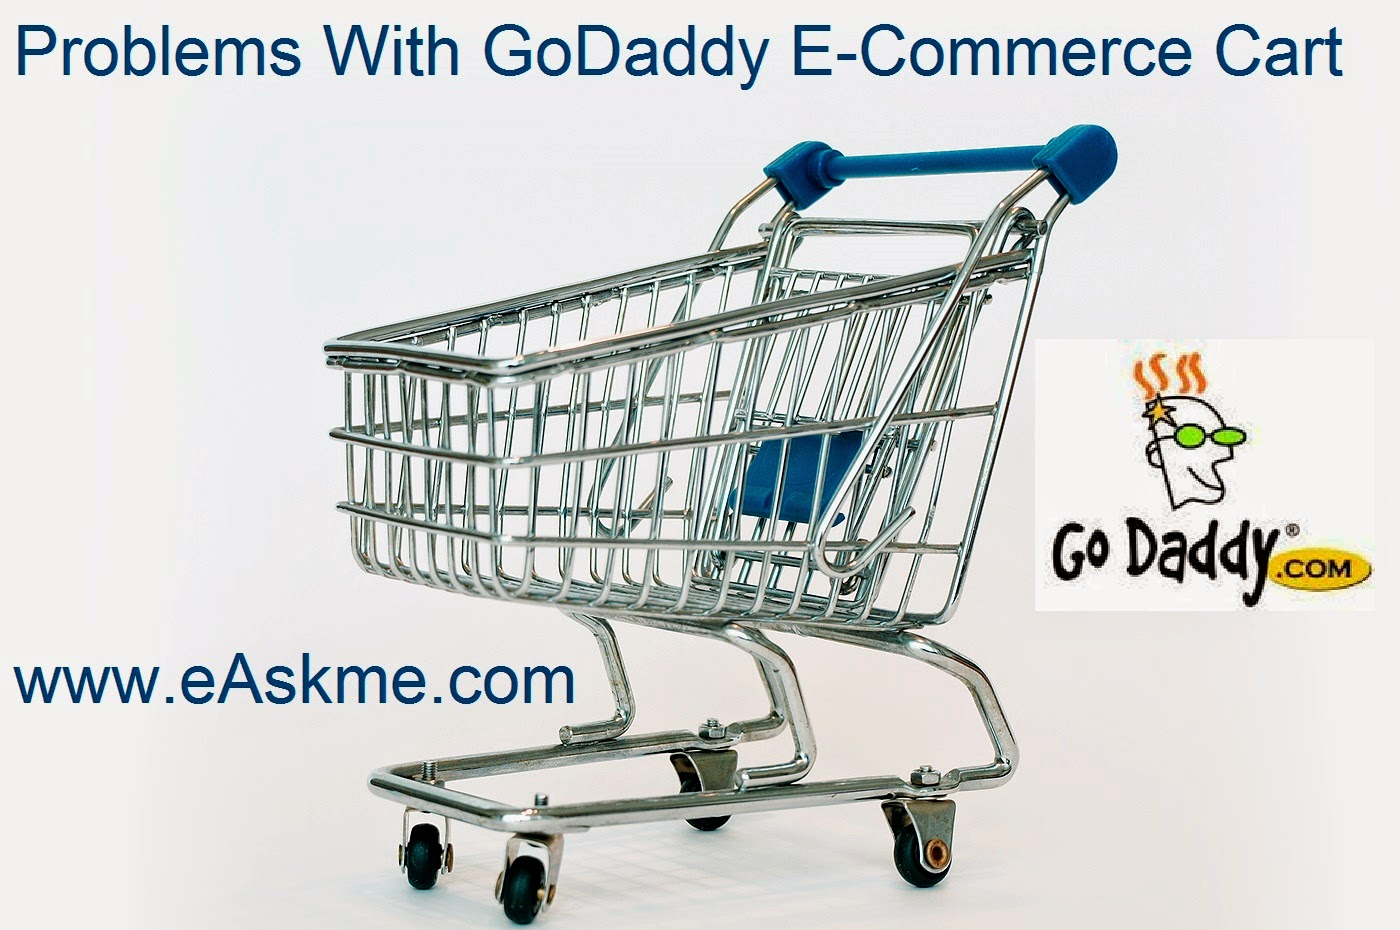 Problems With GoDaddy E-Commerce Cart : eAskme